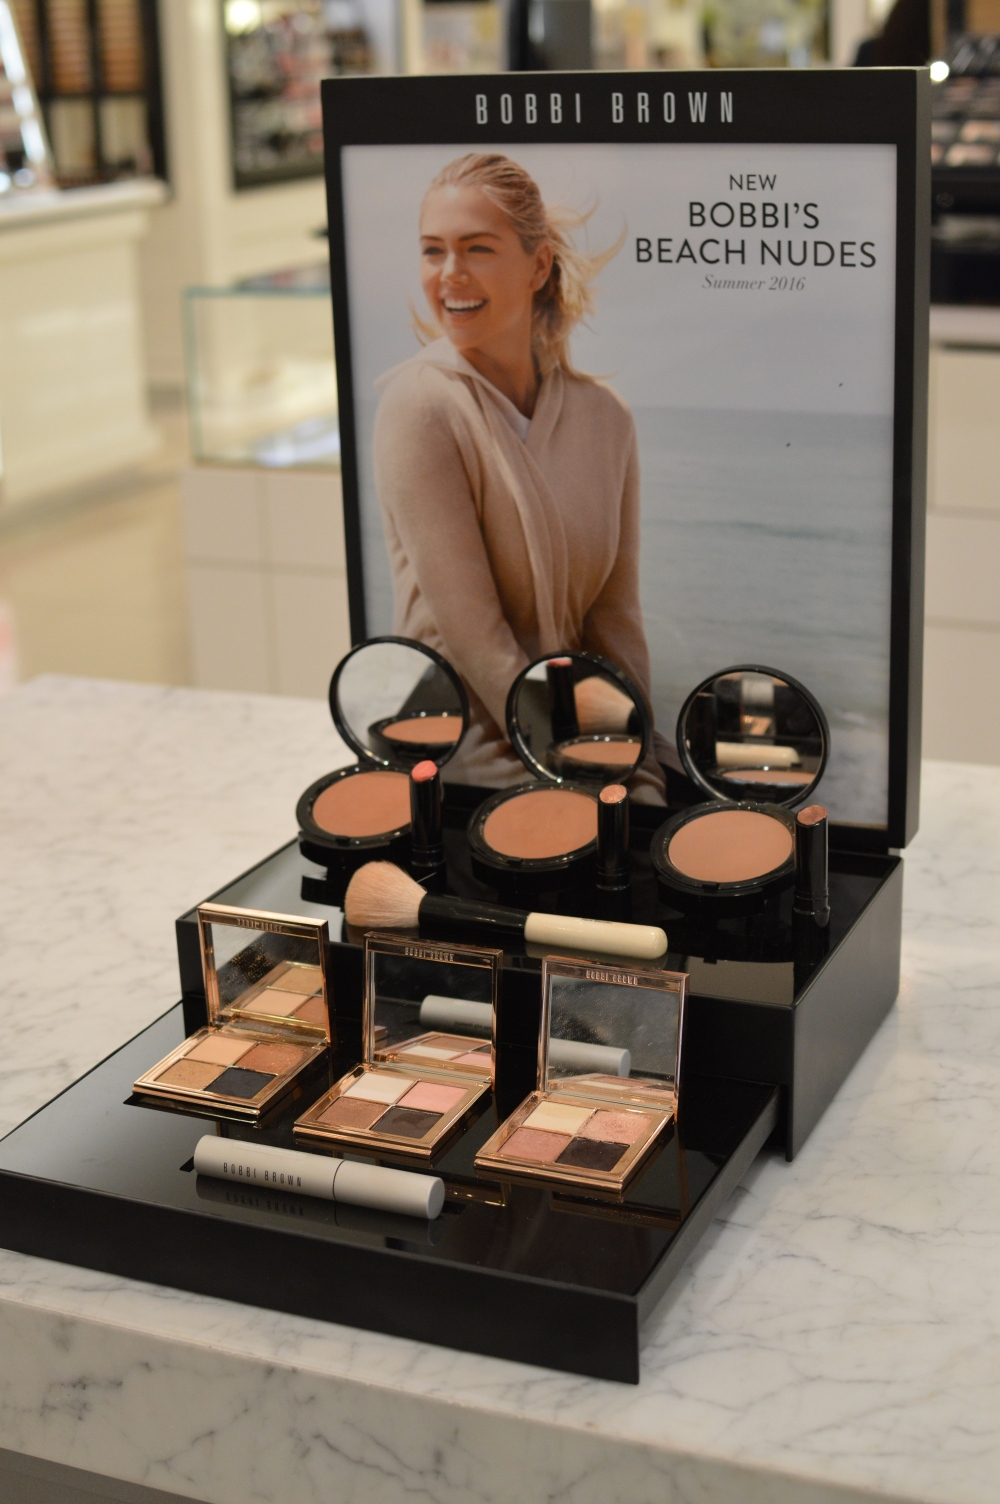 Bobbi's Beach Nudes Collection